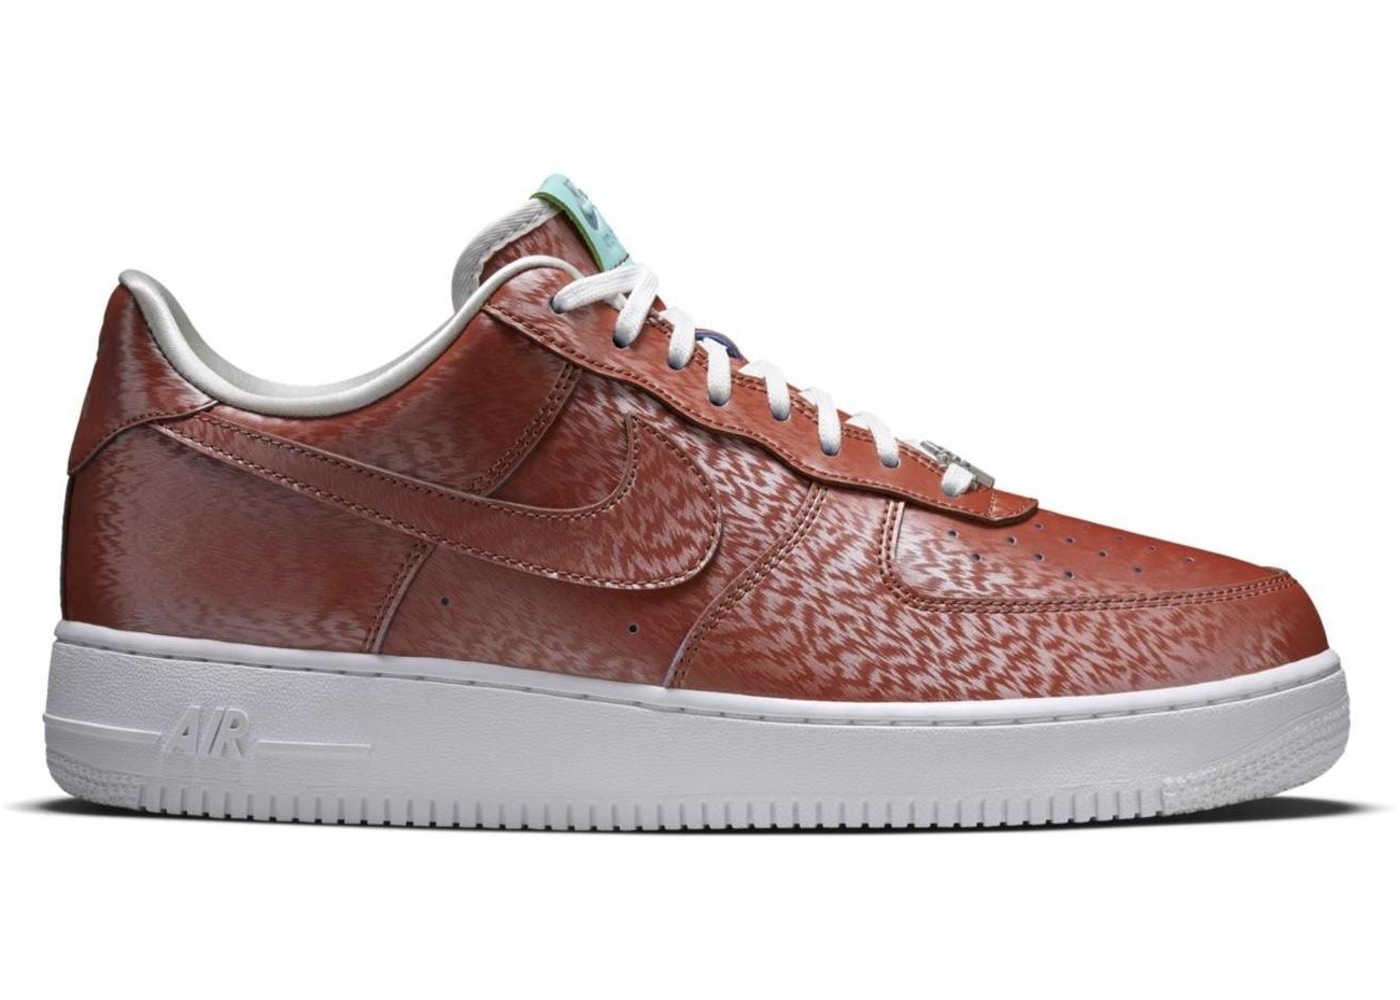 check out f514e 7f835 Air Force 1 Low Lady Liberty - 812297-800